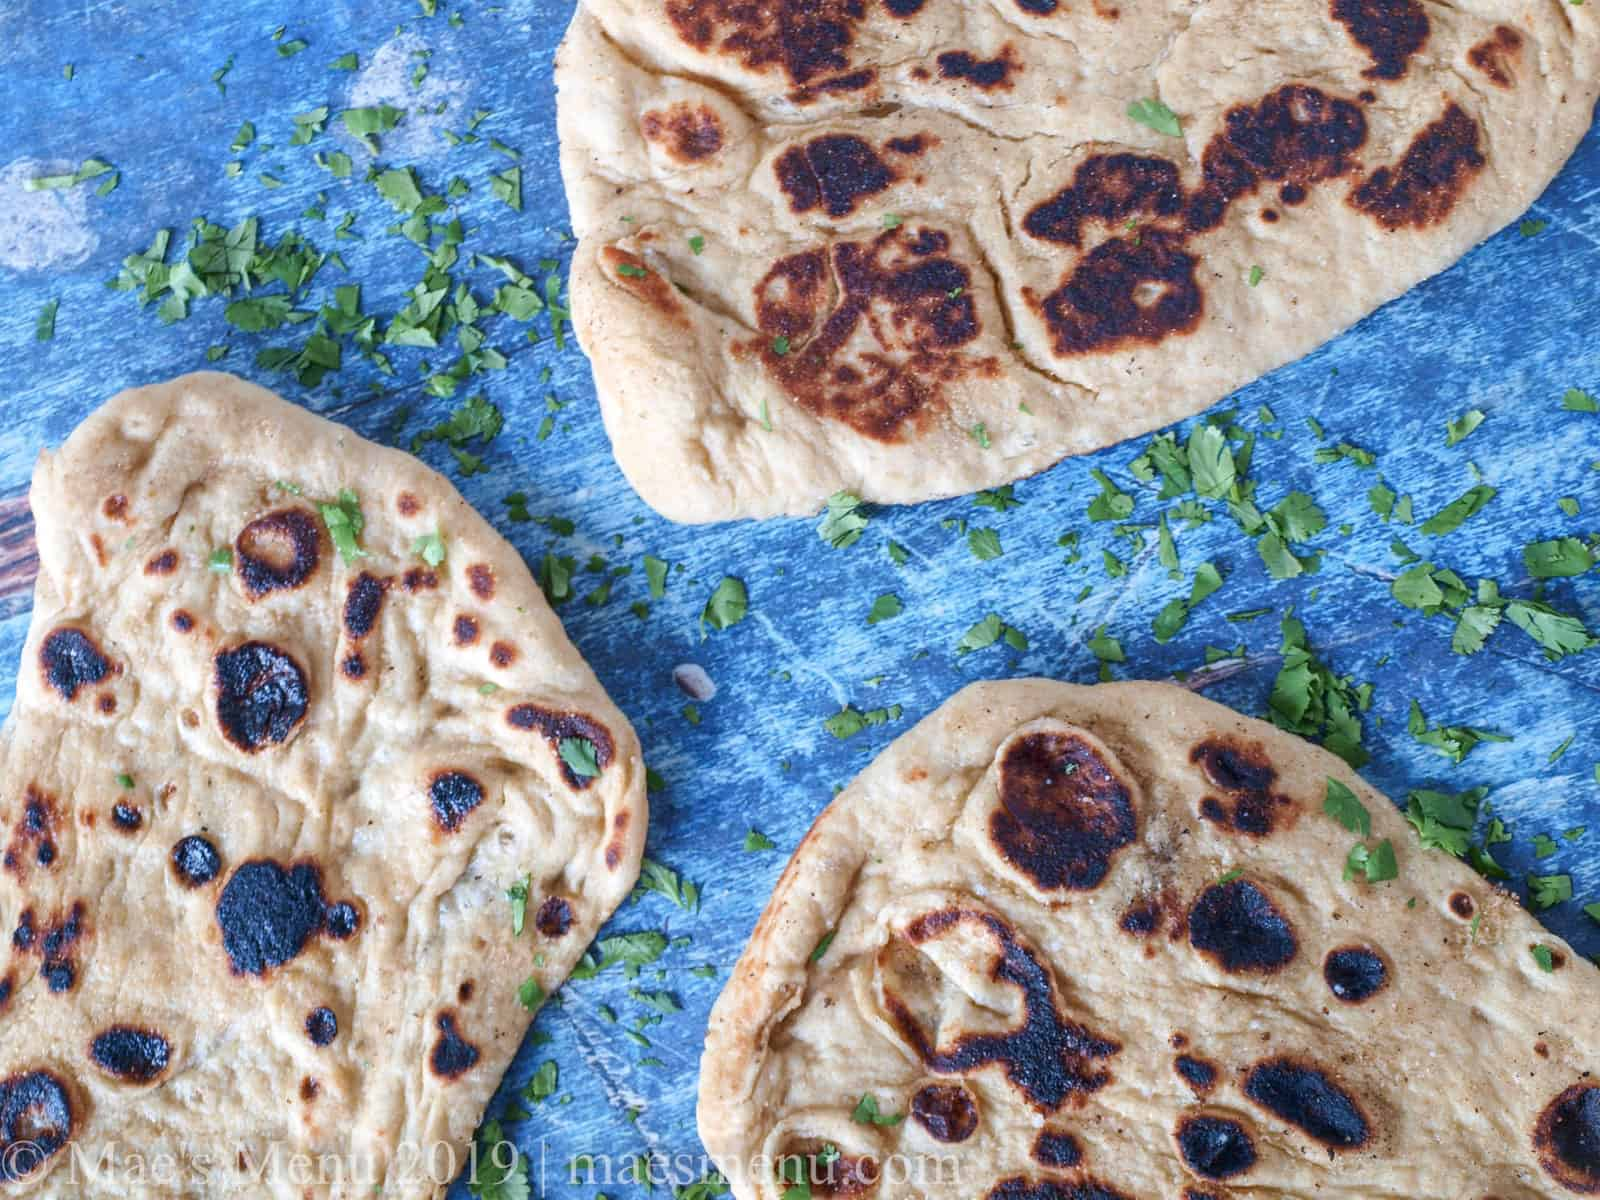 3 whole wheat naan sitting on a blue wooden background.